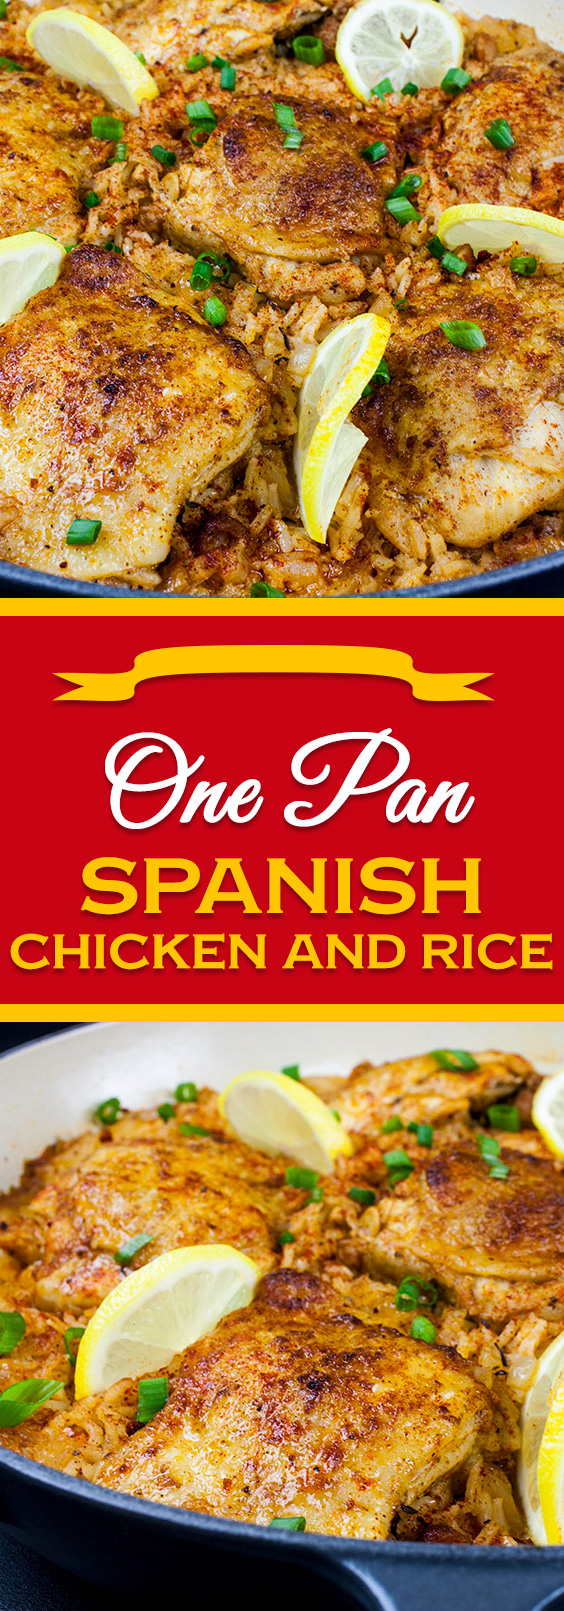 One Pan Spanish Chicken and Rice - Crispy zesty chicken nestled in bold mouthwatering, flavorful rice. A fabulous one-pan-meal.#dinner